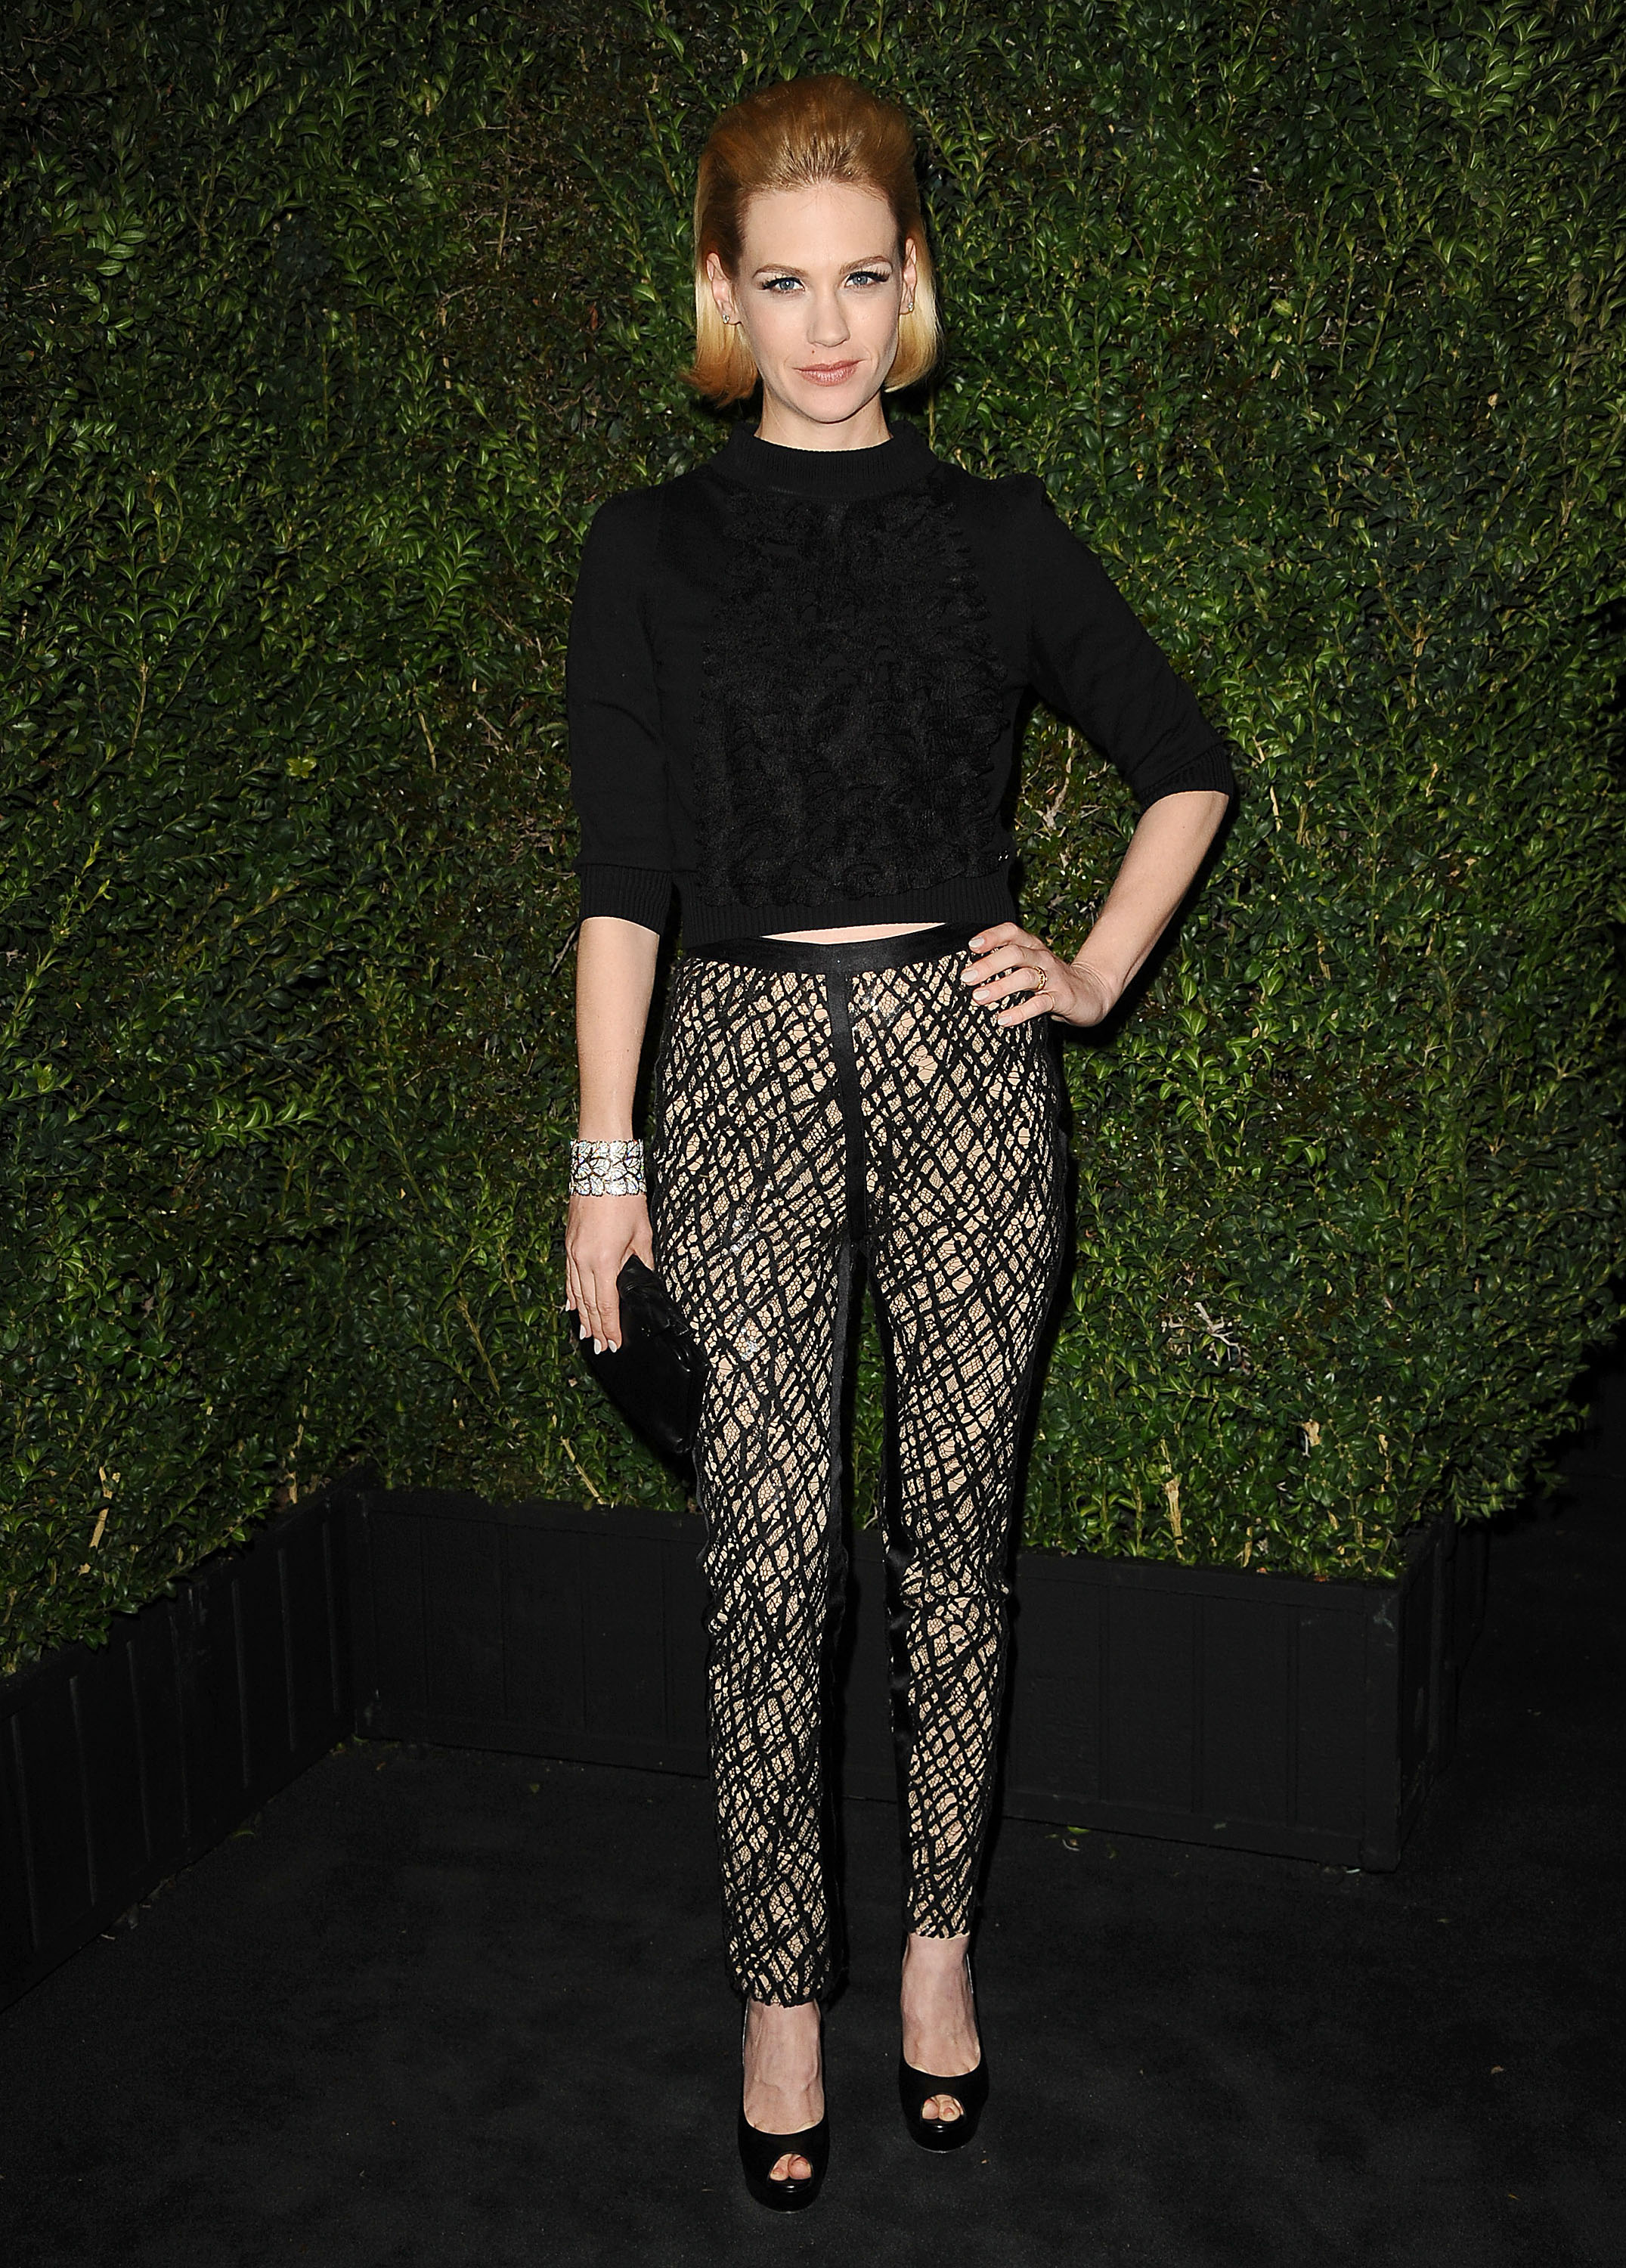 January Jones went retro chic at Chanel's event.